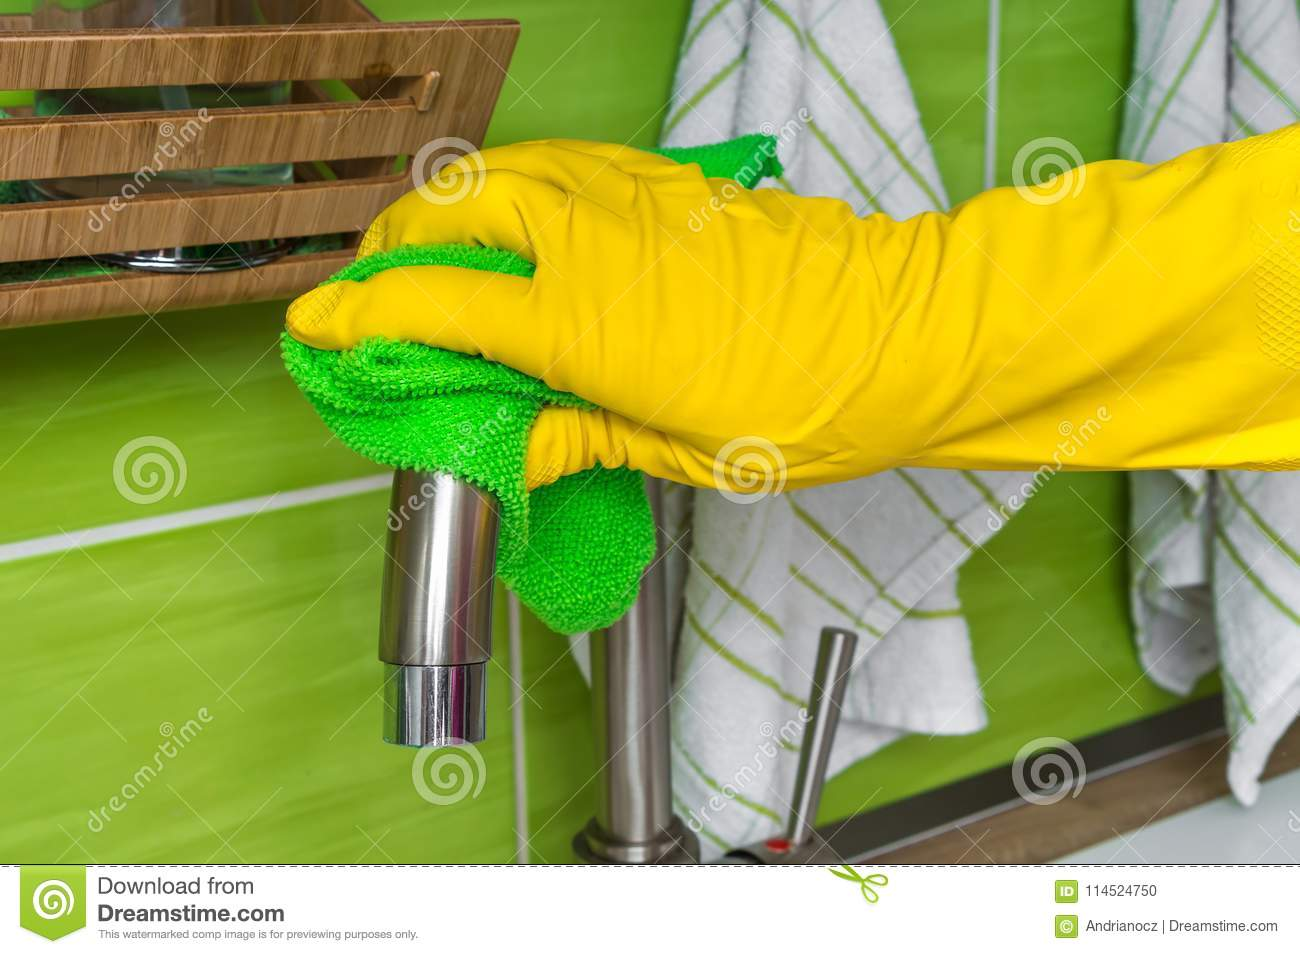 9dc435205009b Hand in glove with green rag is wiping faucet in kitchen - housework and housekeeping  concept